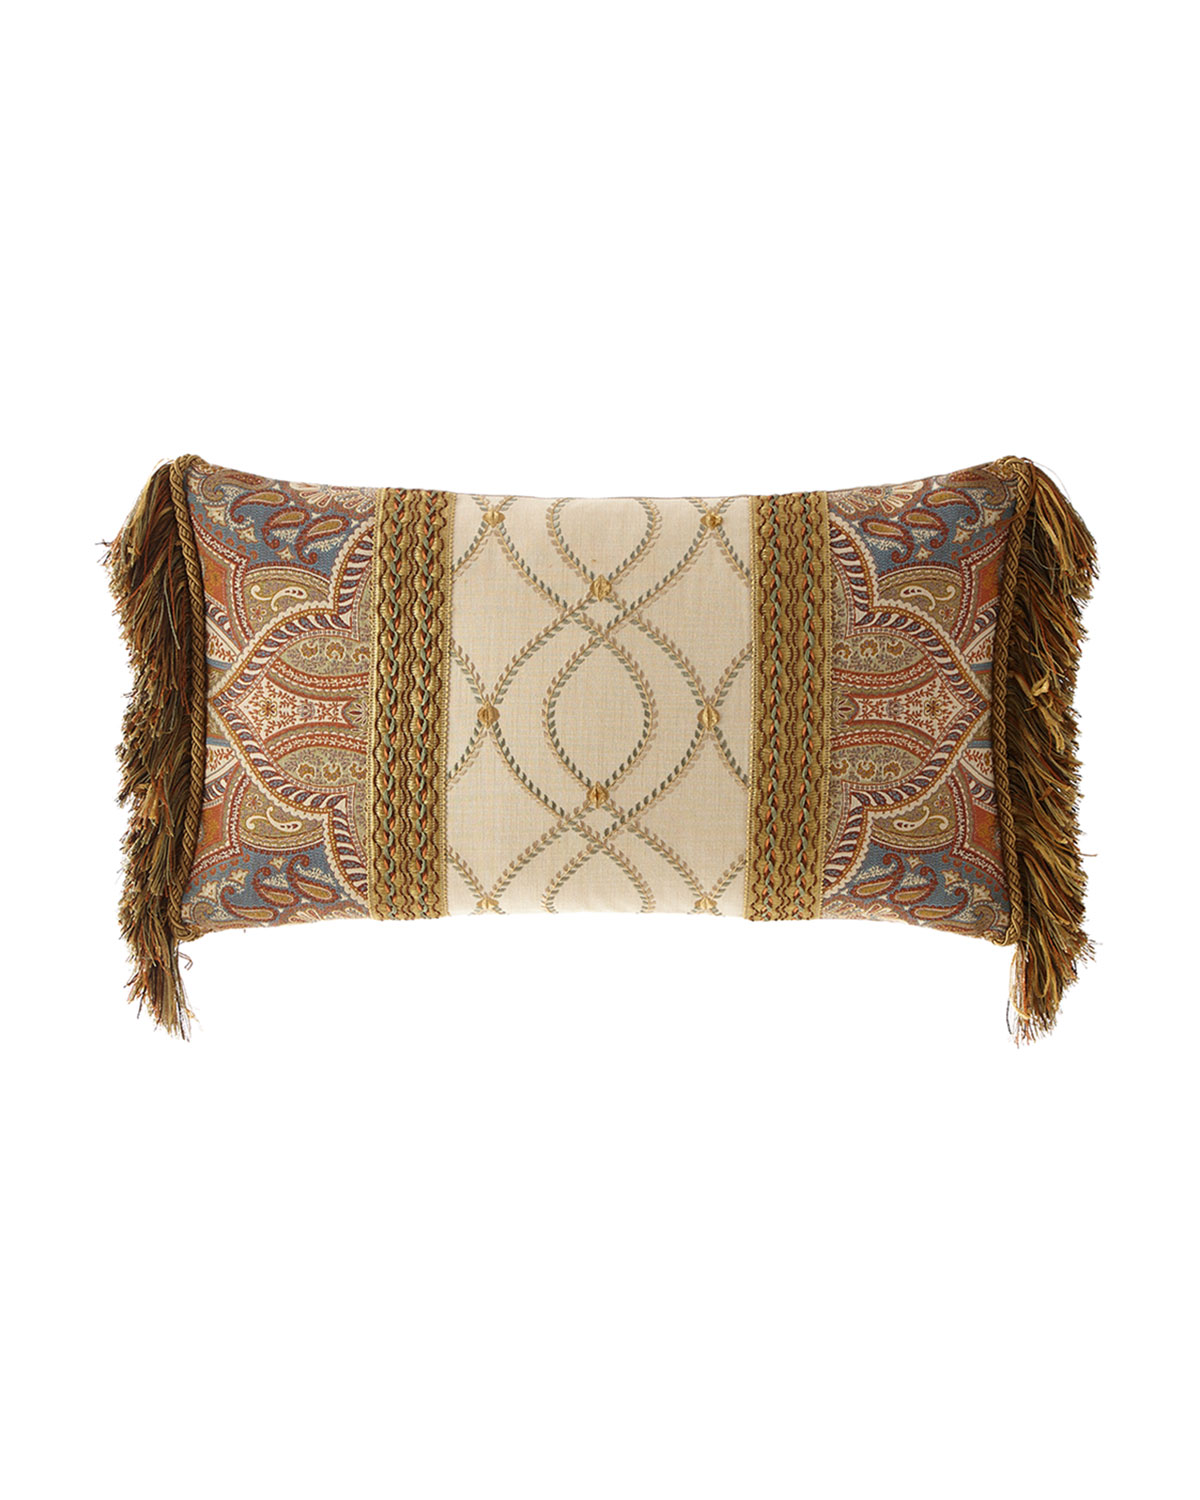 Dian Austin Couture Home Sandoa Pieced Oblong Pillow with Fringe